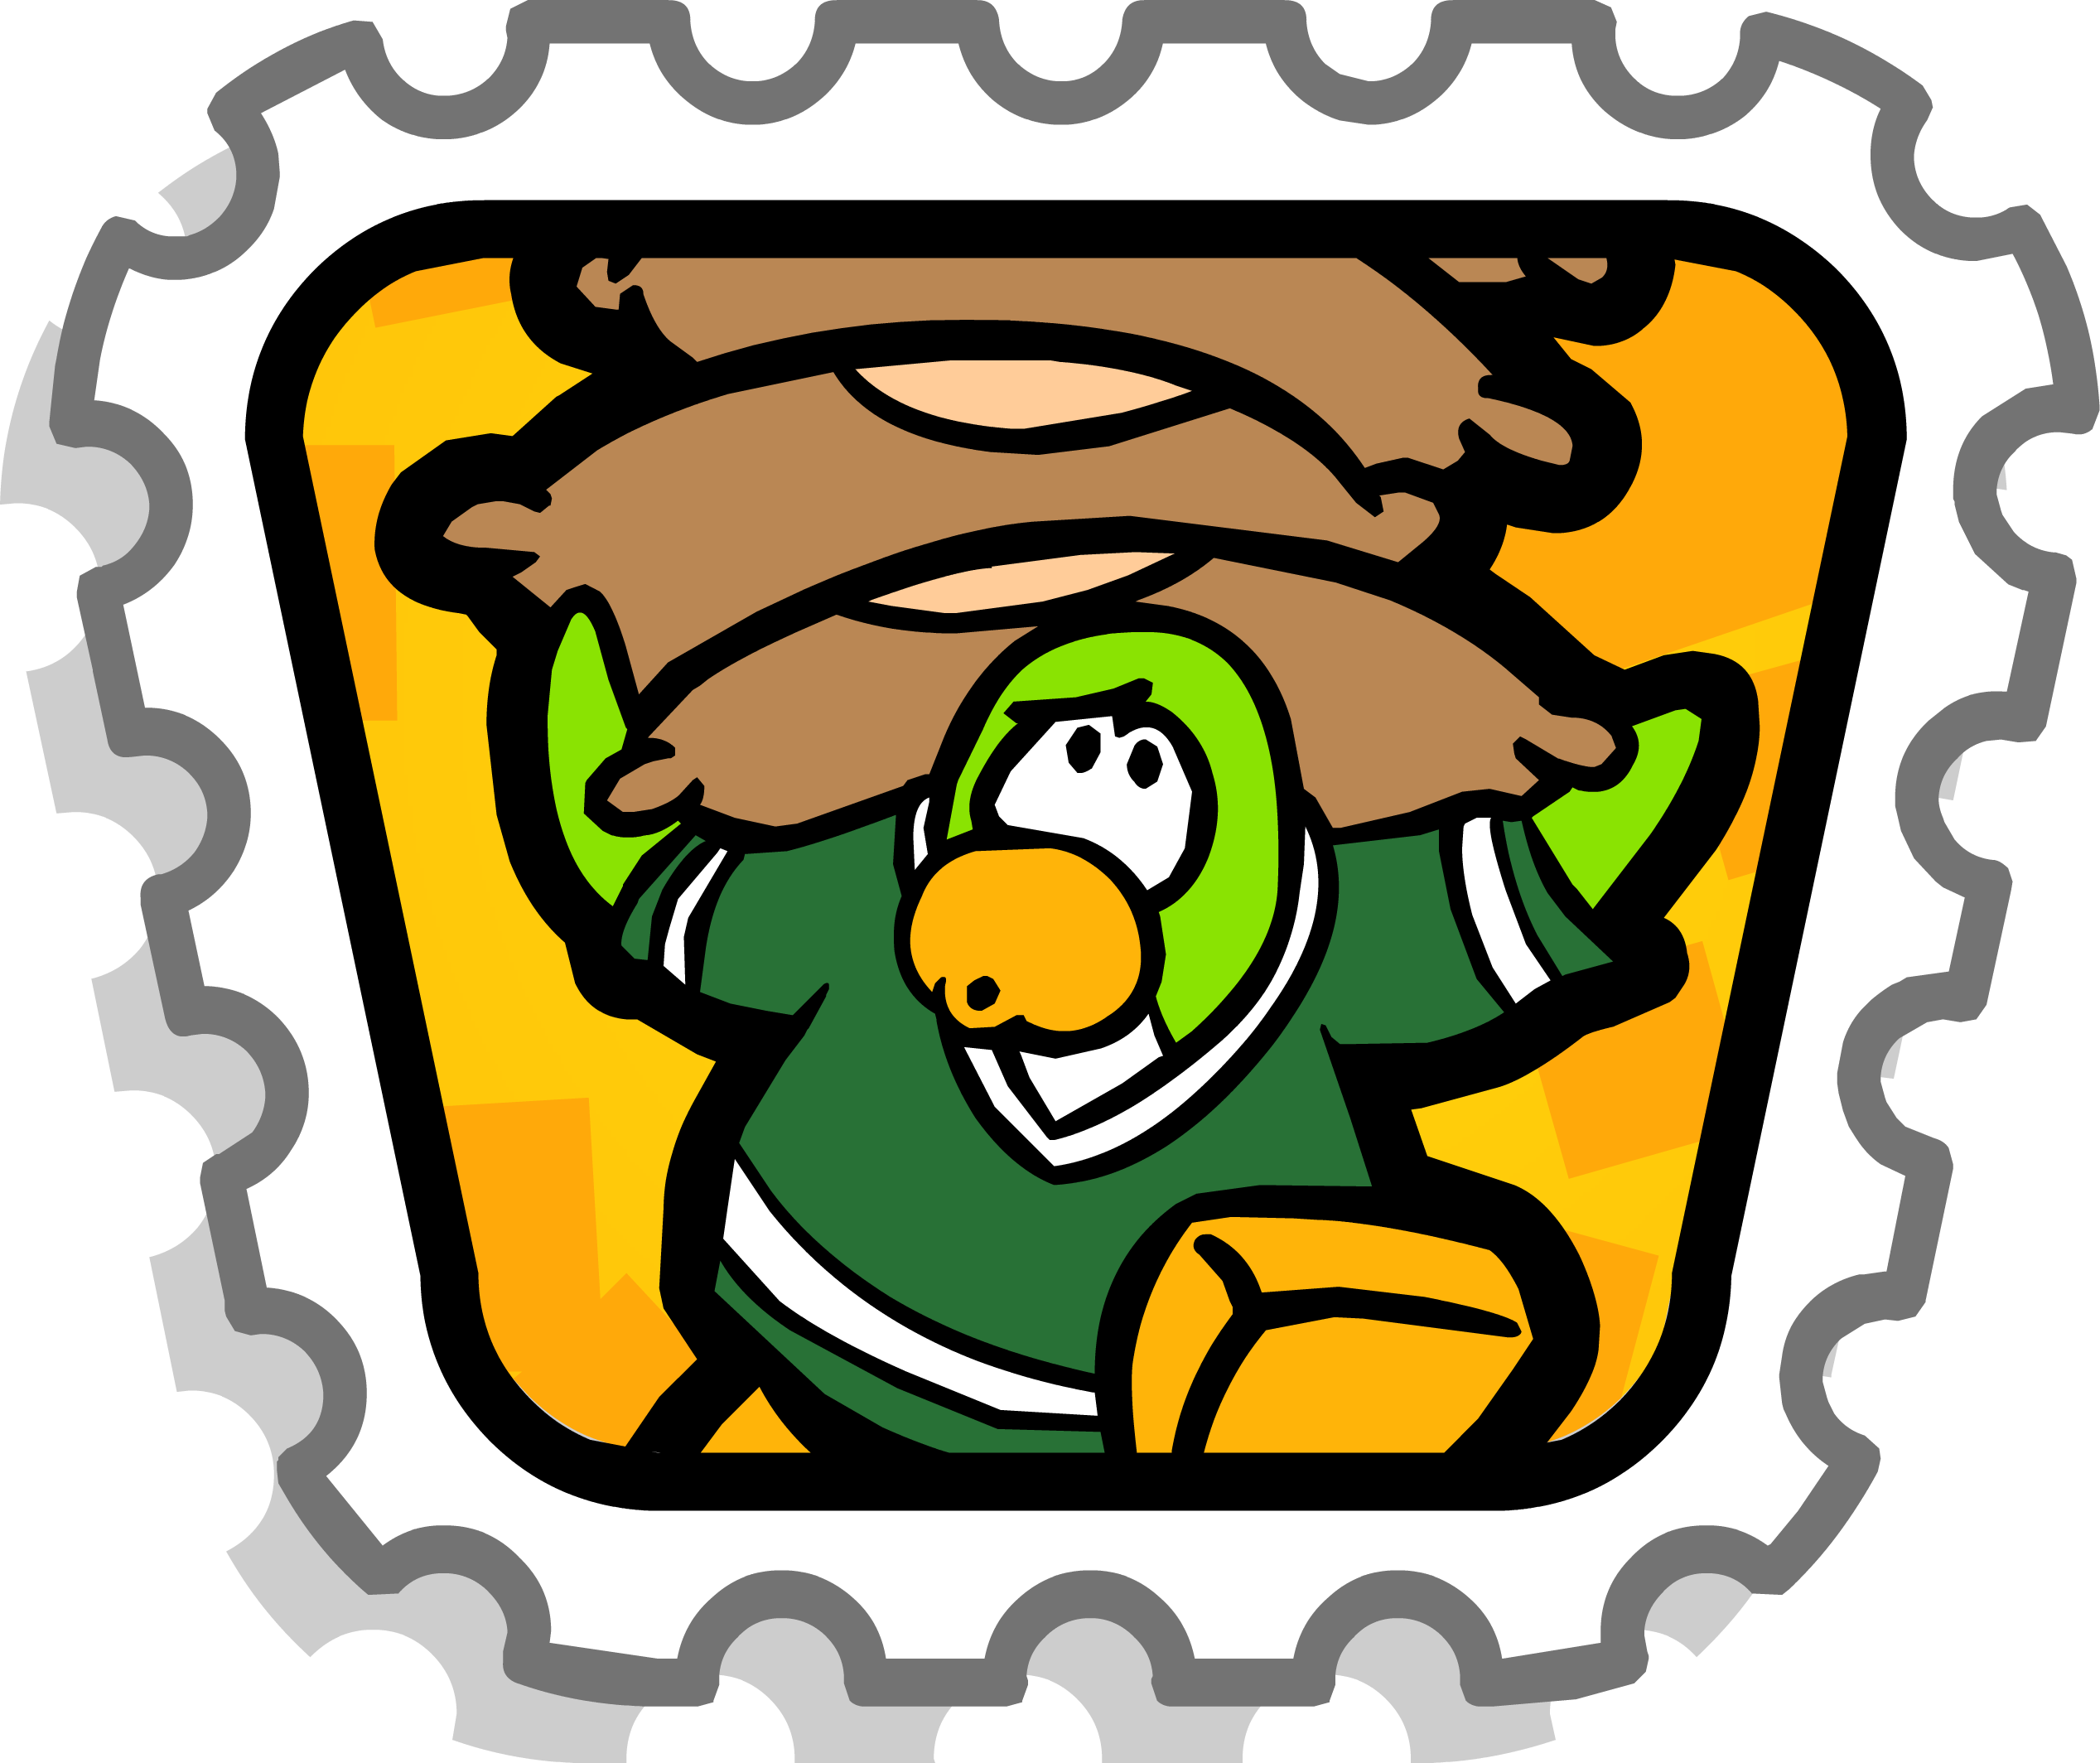 png library stock Stamp club penguin wiki. Balance clipart bean bag.